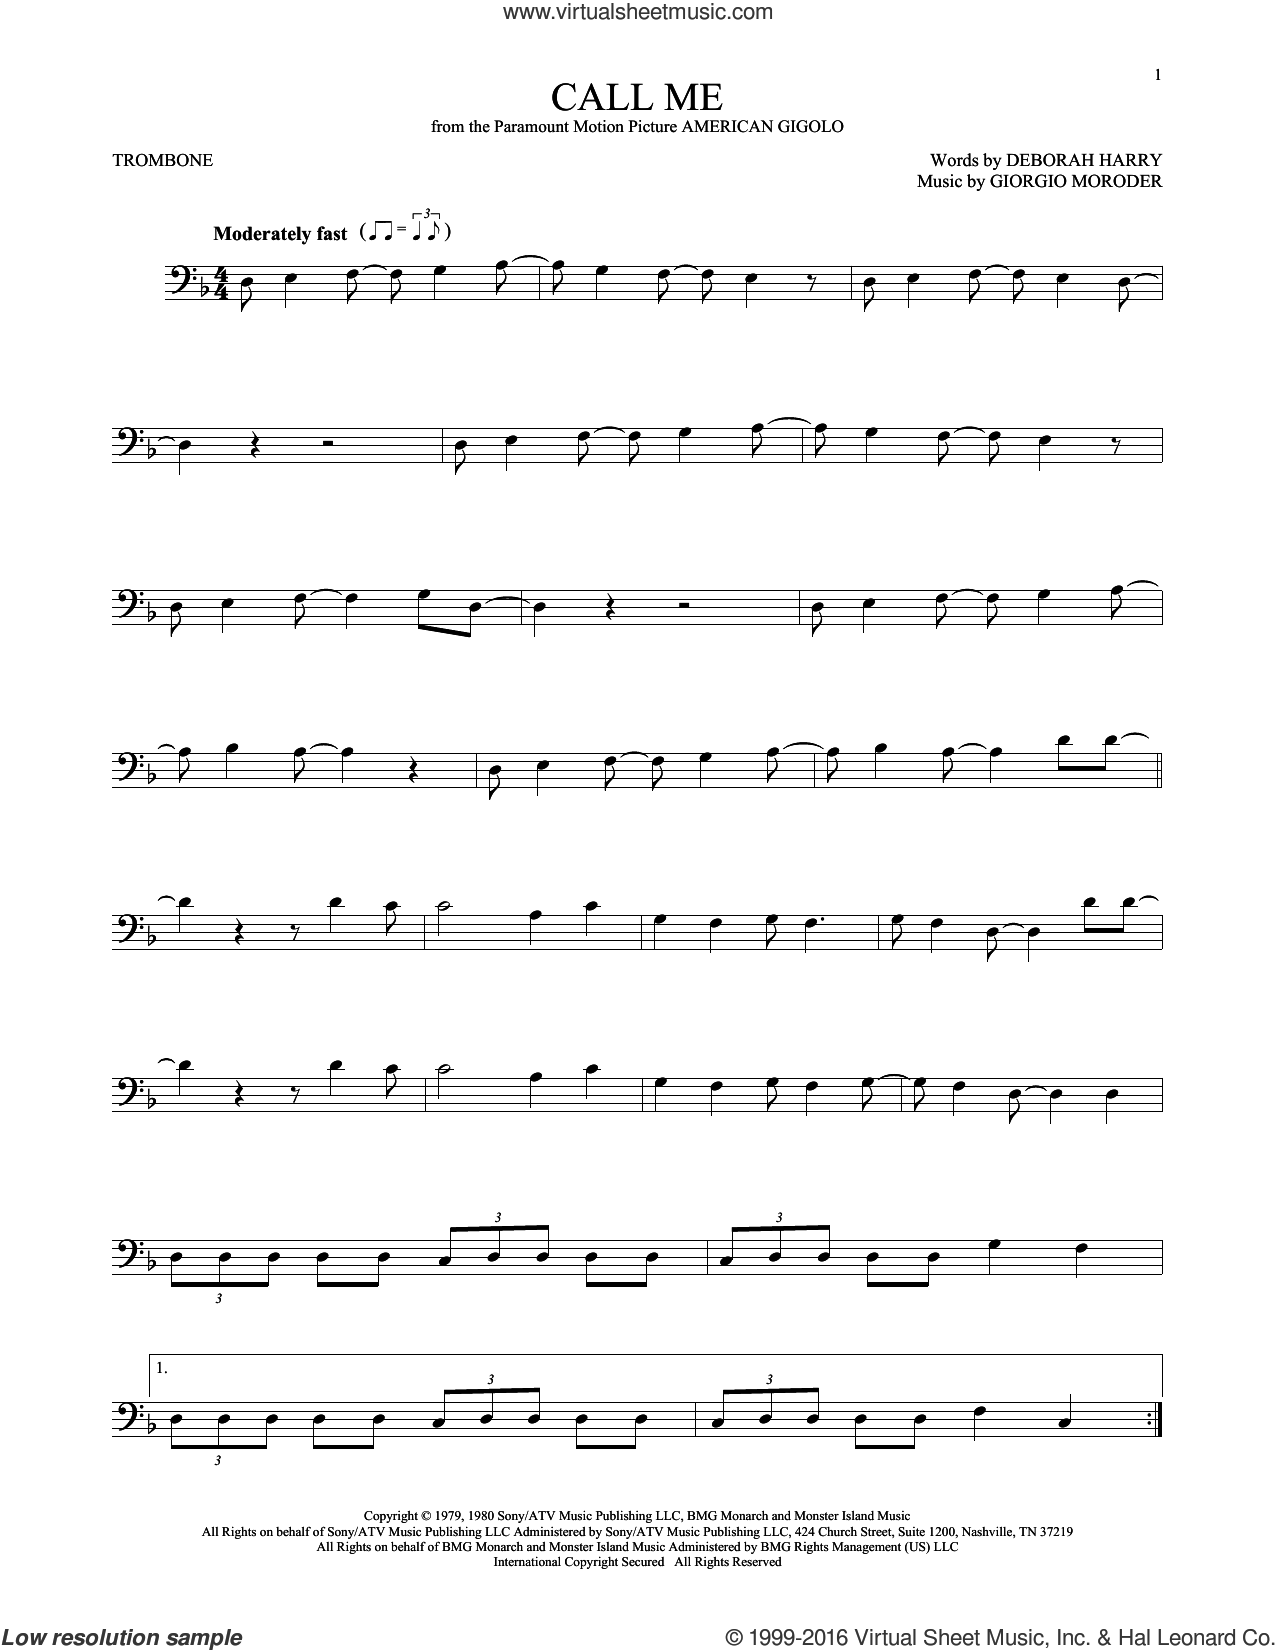 Call Me sheet music for trombone solo by Blondie, Deborah Harry and Giorgio Moroder, intermediate skill level